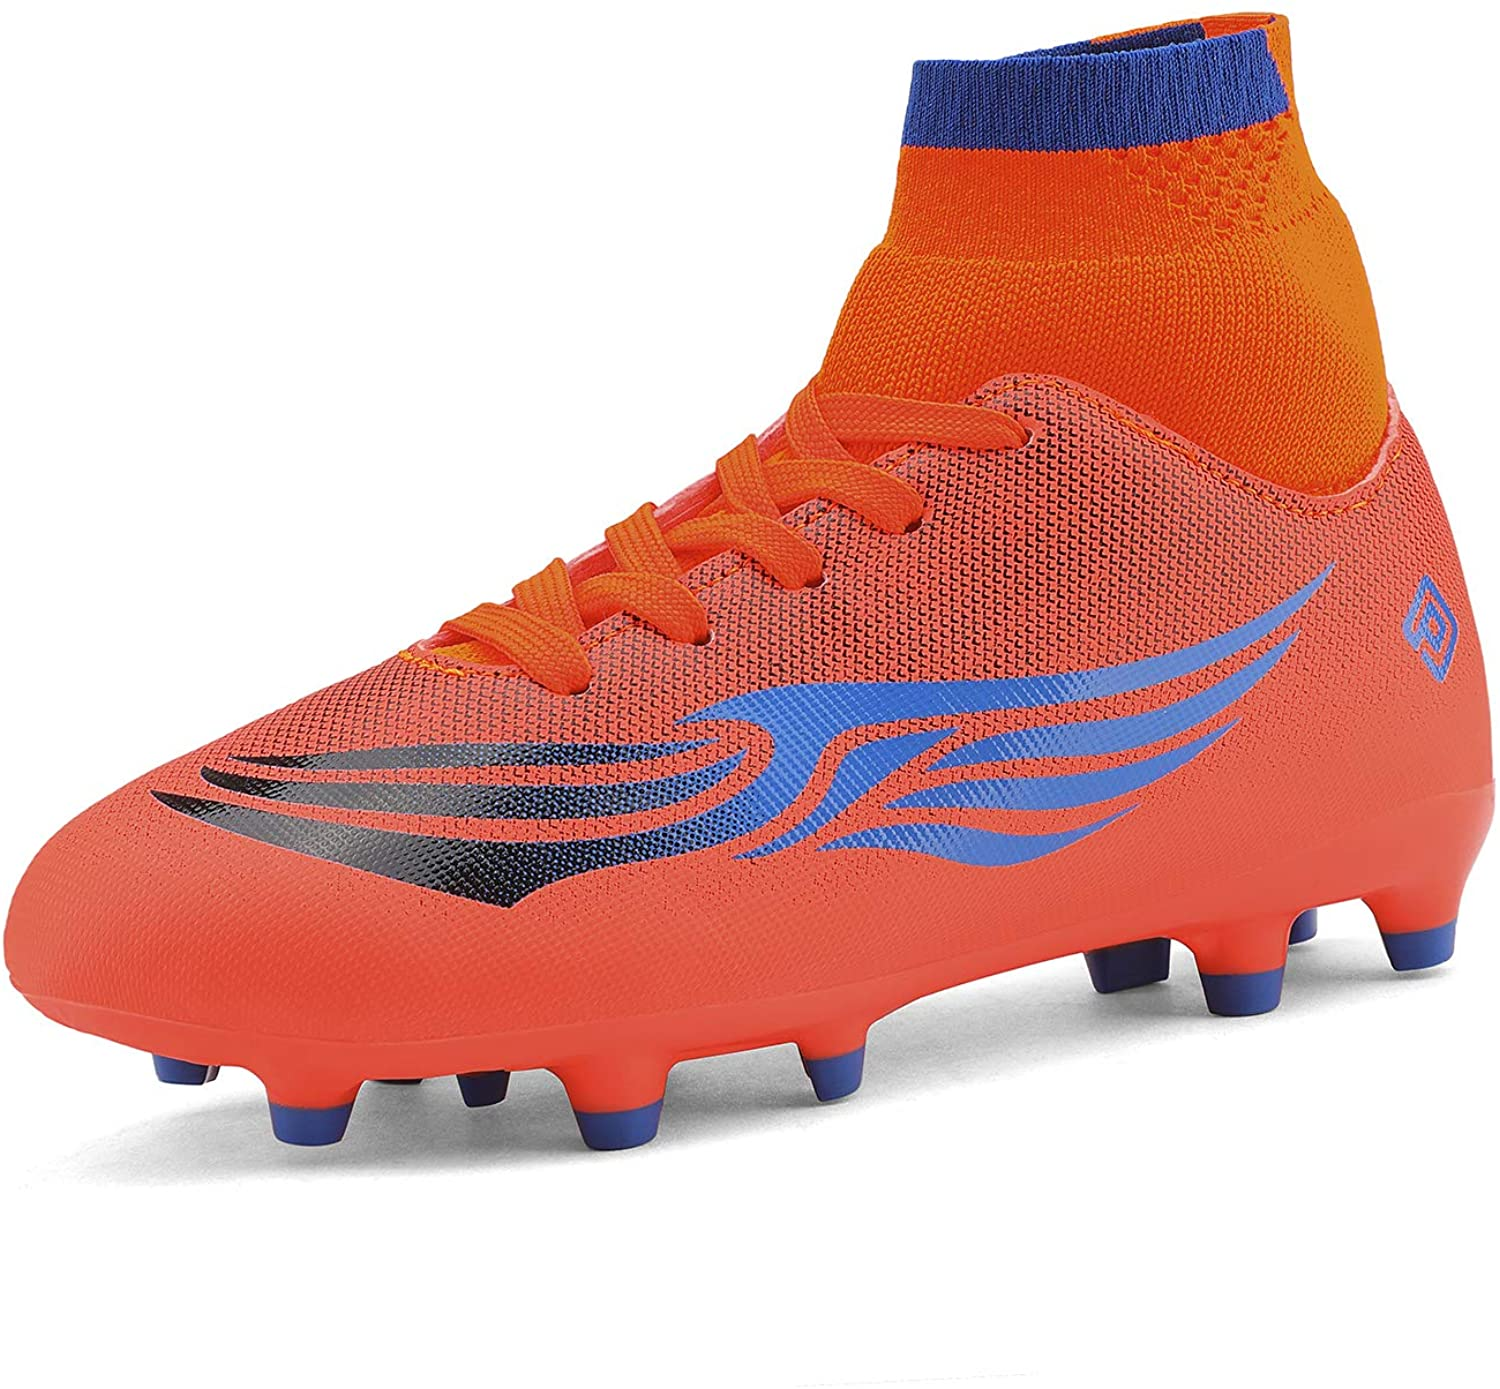 DREAM PAIRS Girls Orange Blue Soccer Football Cleats Athletic Shoes Size 4 M US Big Kid HZ19009K